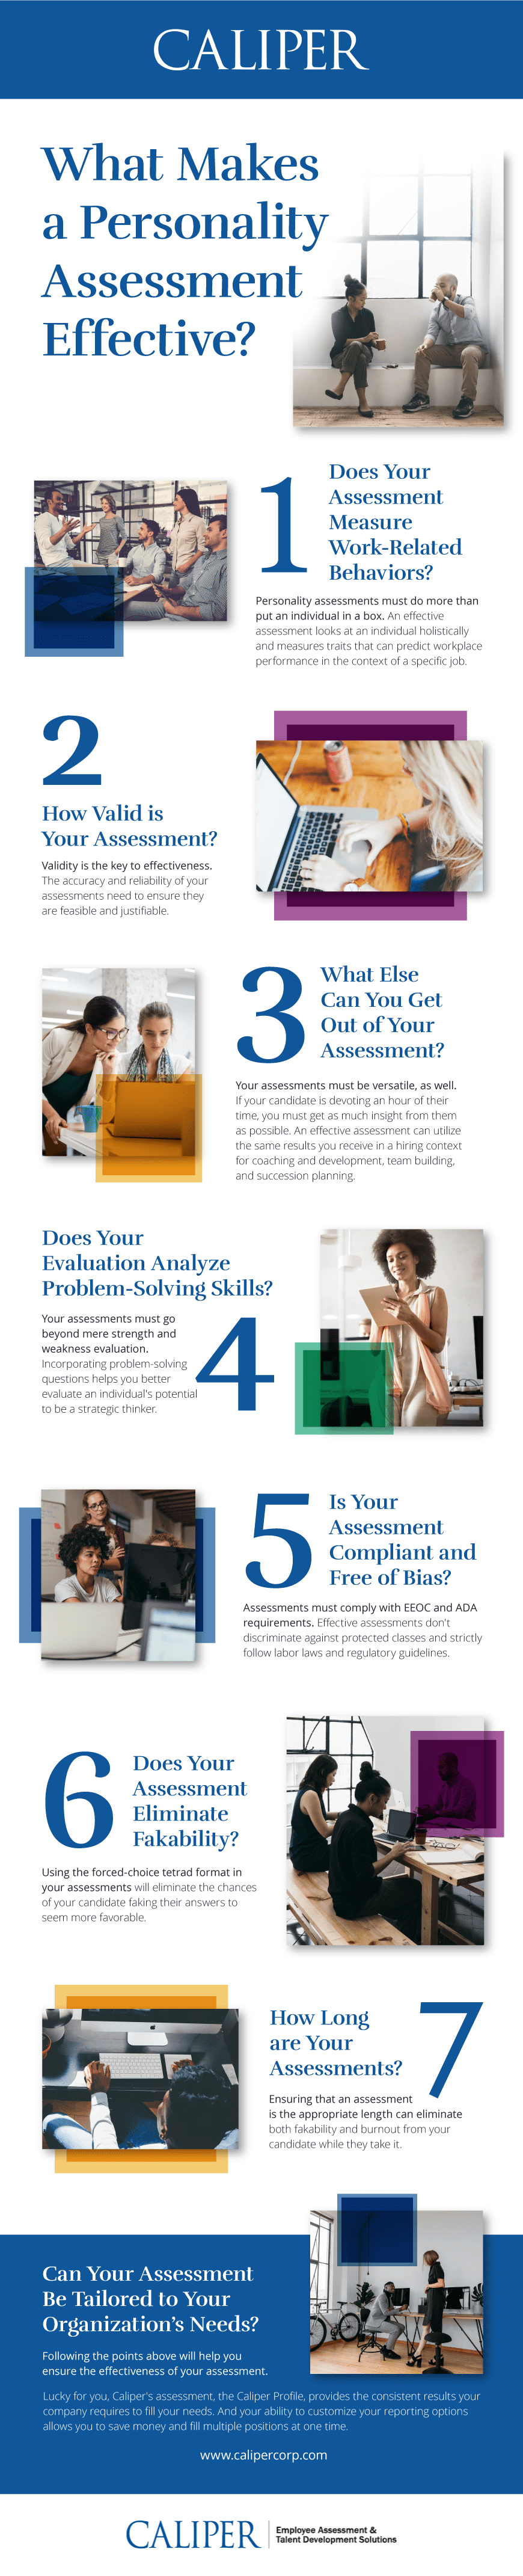 What Makes a Personality Assessment Effective? Infographic